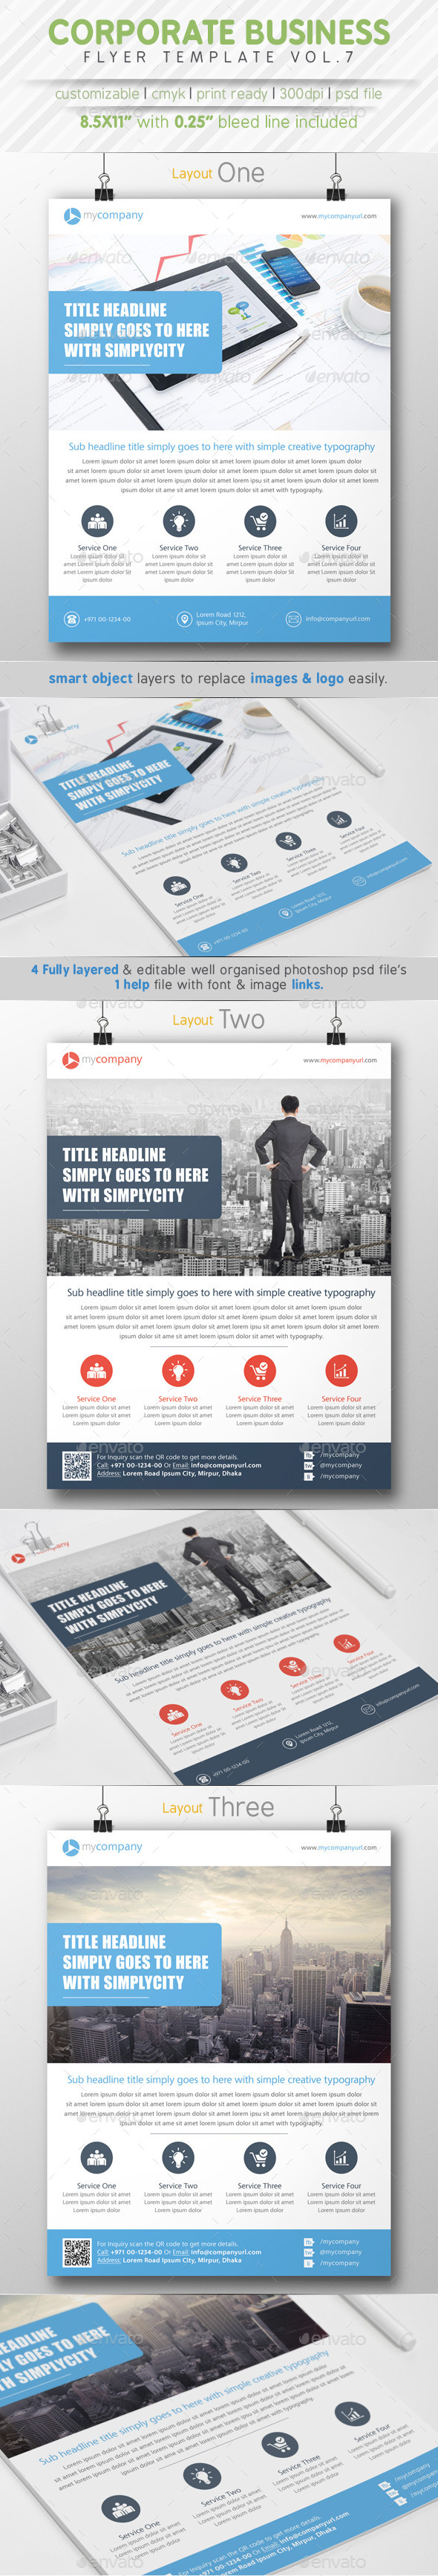 GraphicRiver Corporate Business Flyer Vol.7 8781950